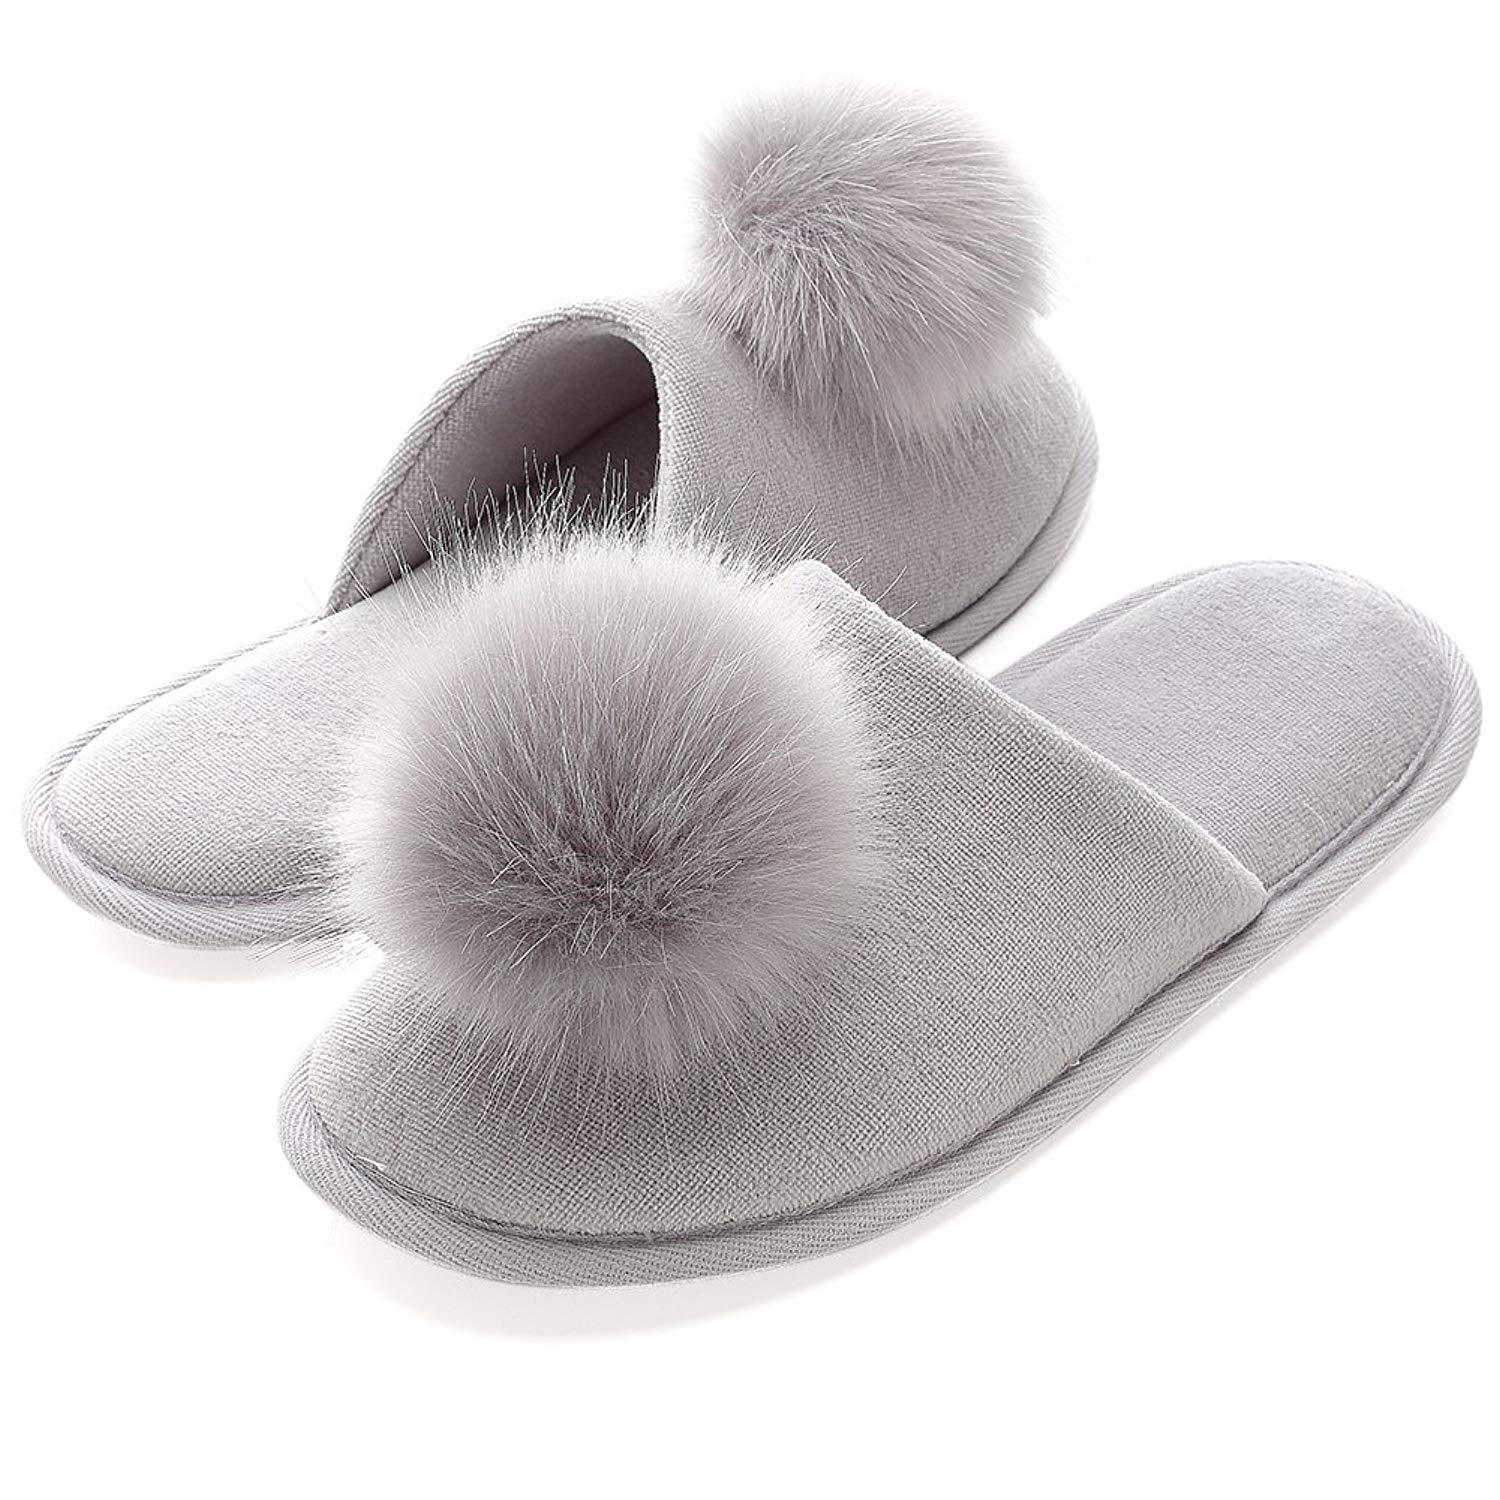 cbae9c5a86d Get Quotations · INFLATION Women s Plush Pom-pom Fuzzy Slippers Fluffy  Slippers Slip on Indoor Outdoor Slippers for